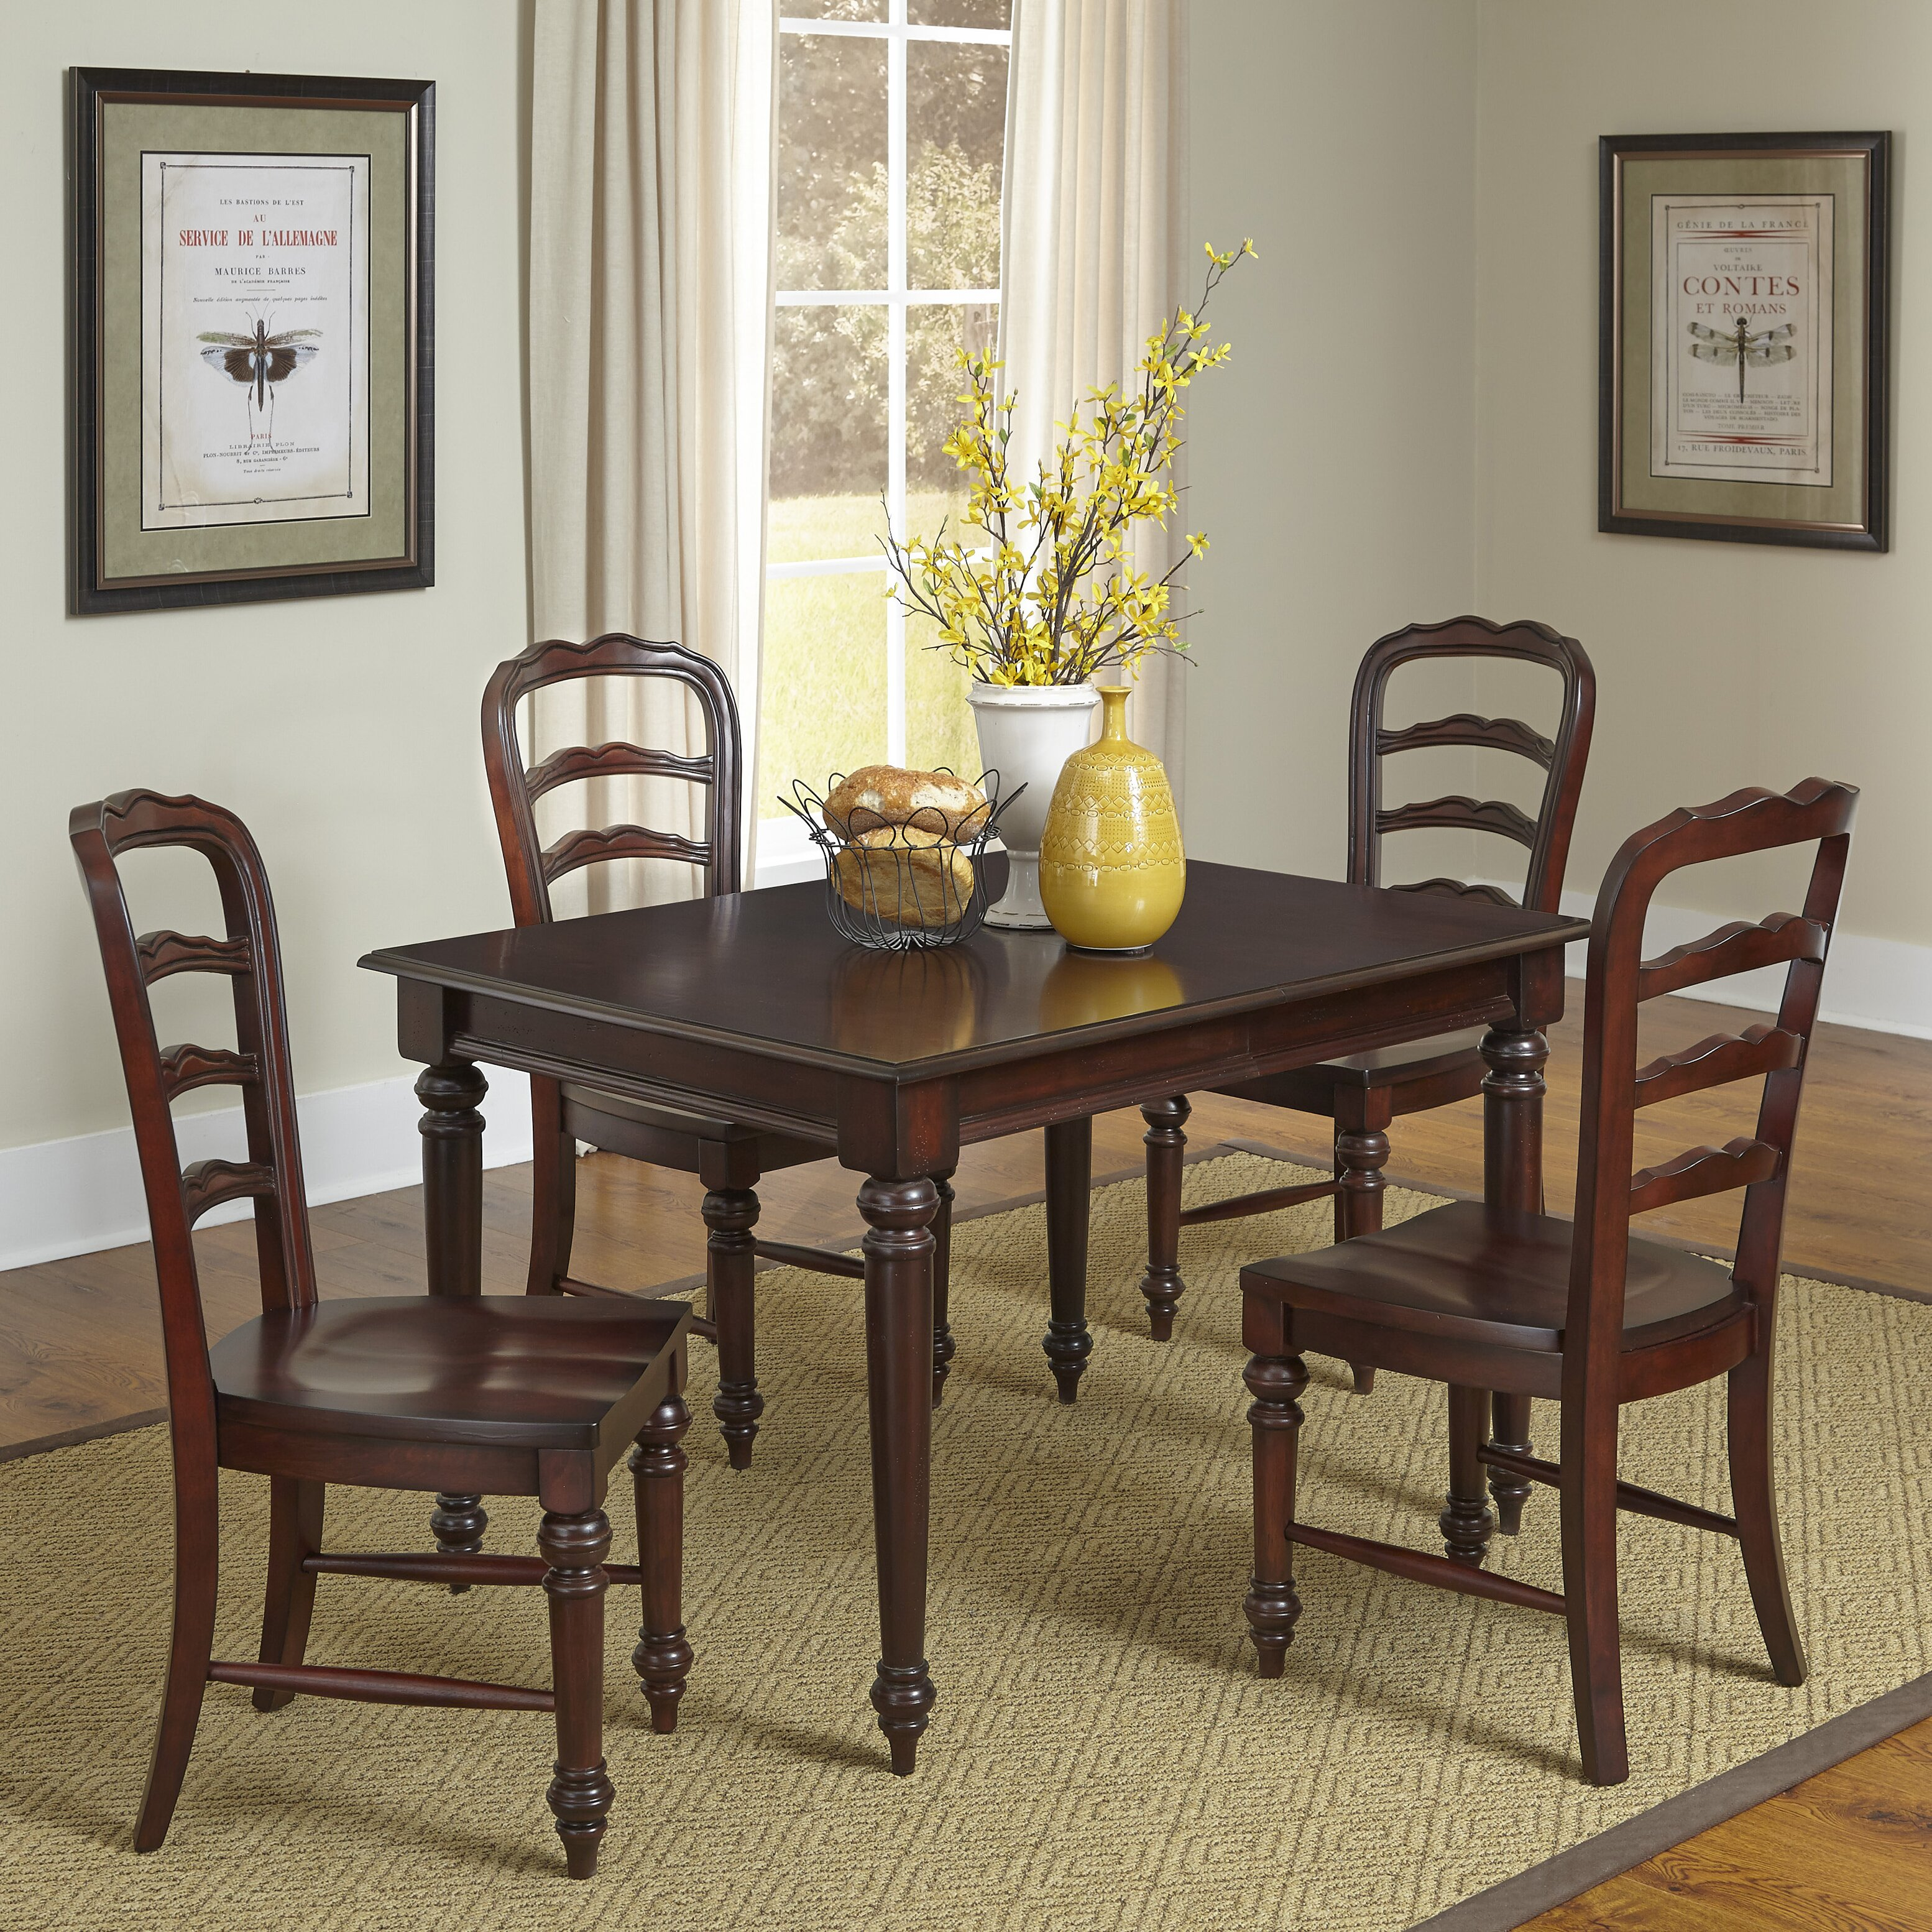 French Style Dining Room Furniture Antique Design French Dining Table With Blue Leather Chair Luxury